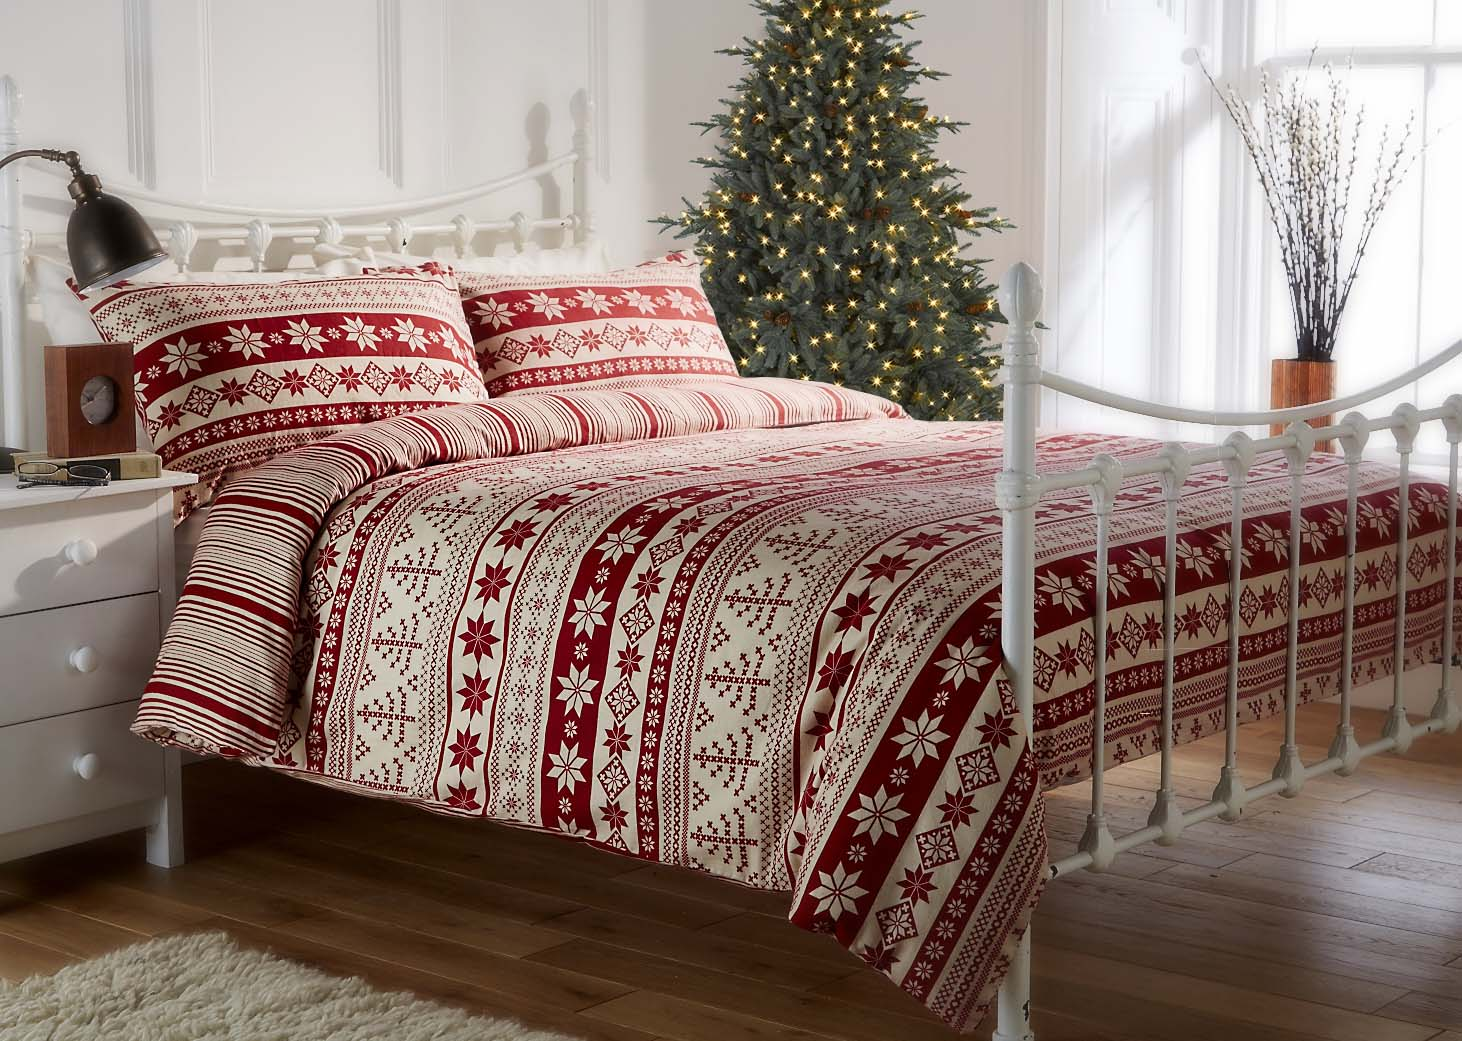 gallery cheeky is set selling elf duvet bed seller george a print uk asda home christmas lifestyle bedding best shopping news